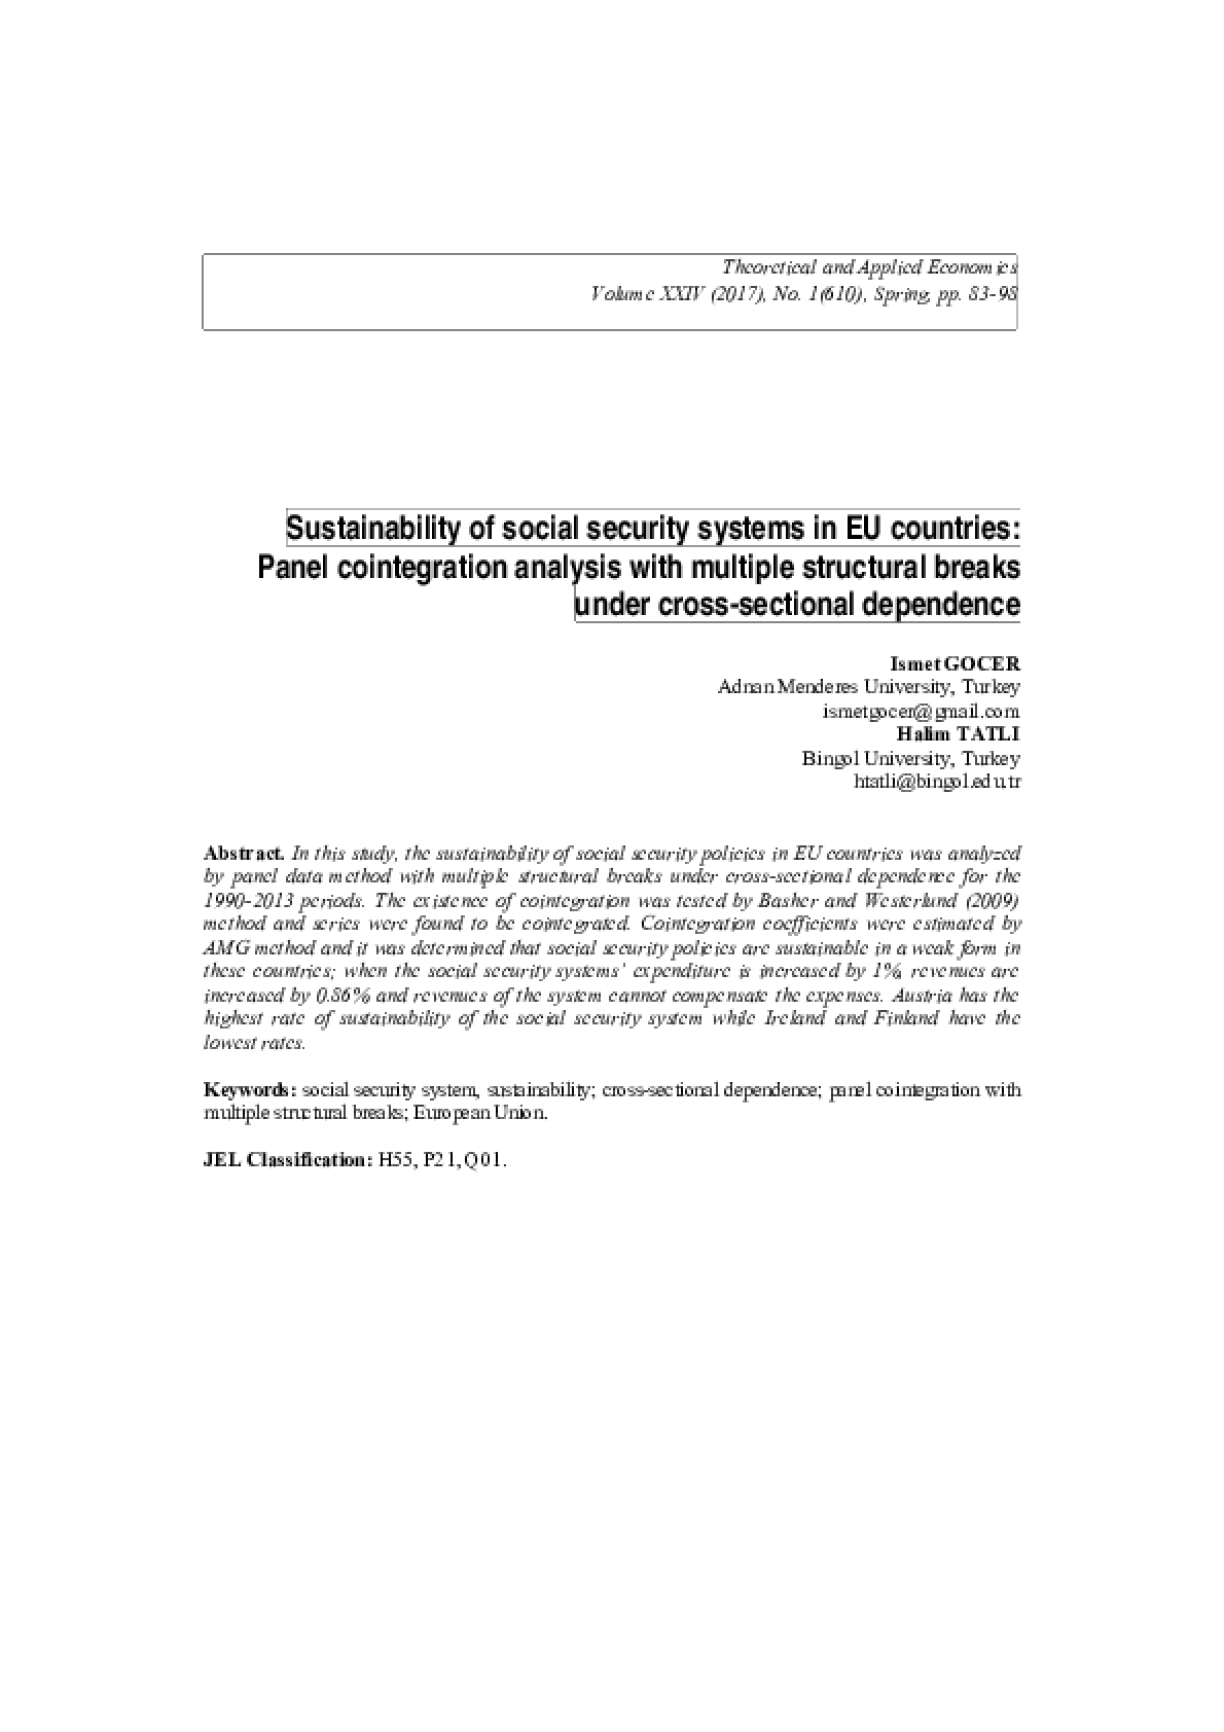 Sustainability of Social Security Systems in EU Countries: Panel Cointegration Analysis with Multiple Structural Breaks under Cross-sectional Dependence